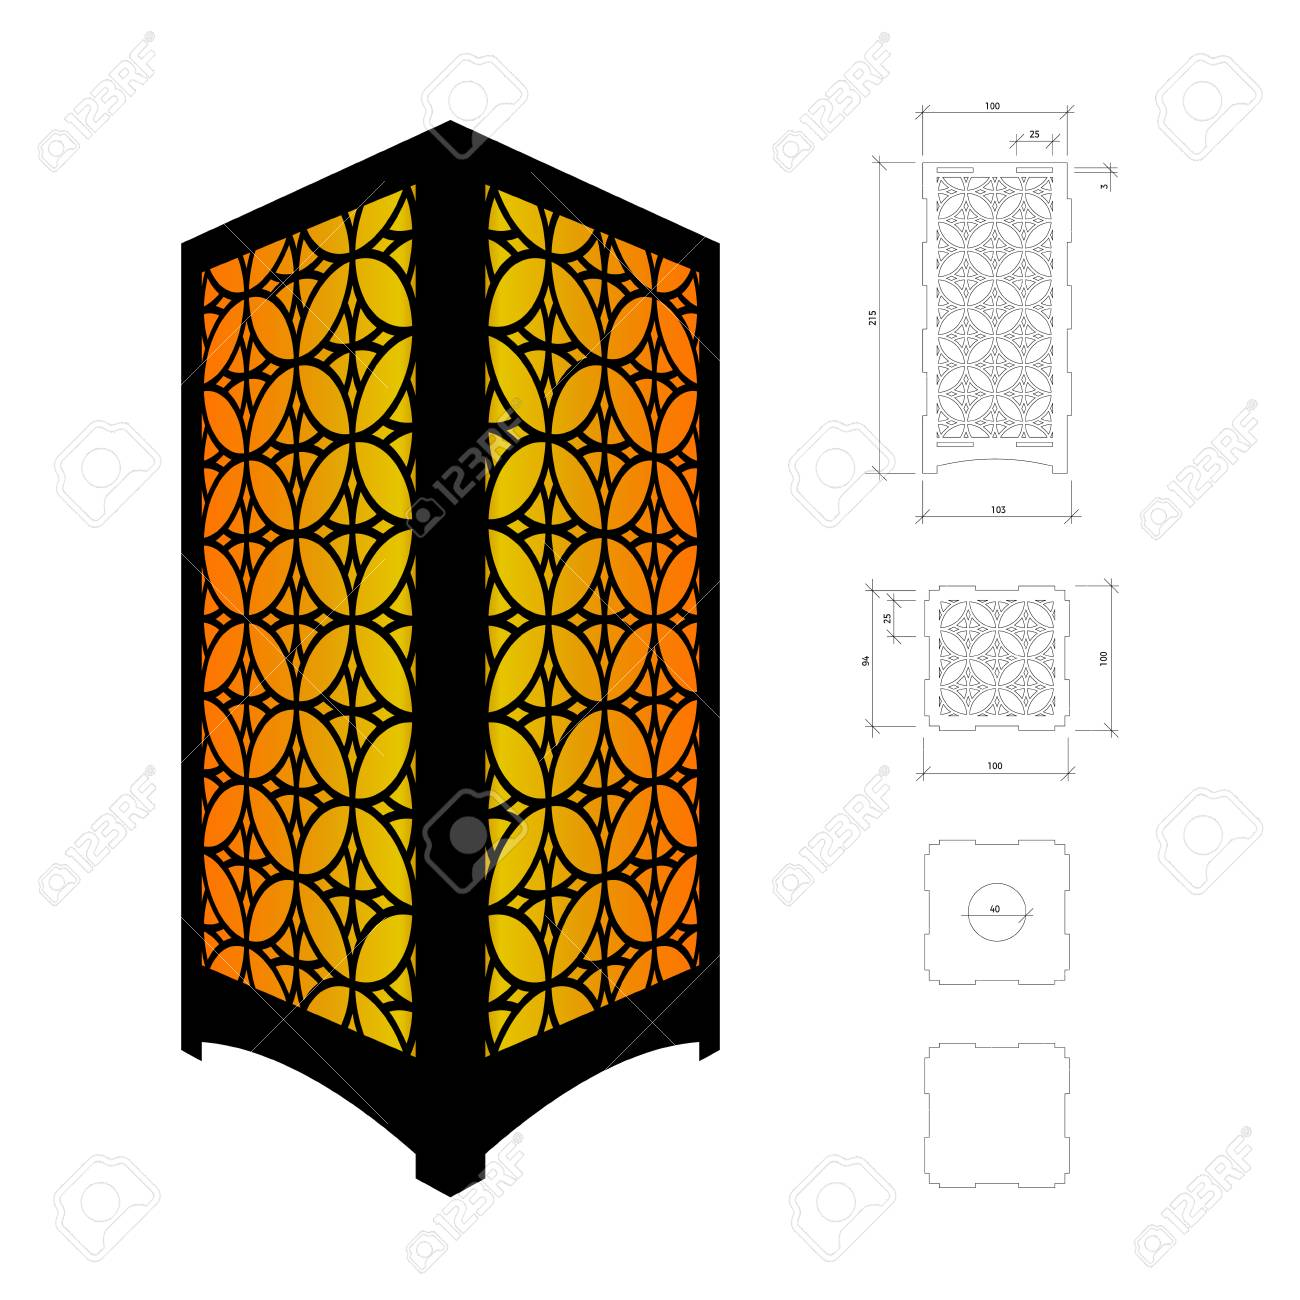 Cut out template for lamp candle holder lantern or chandelier cut out template for lamp candle holder lantern or chandelier plywood 3mm arubaitofo Images